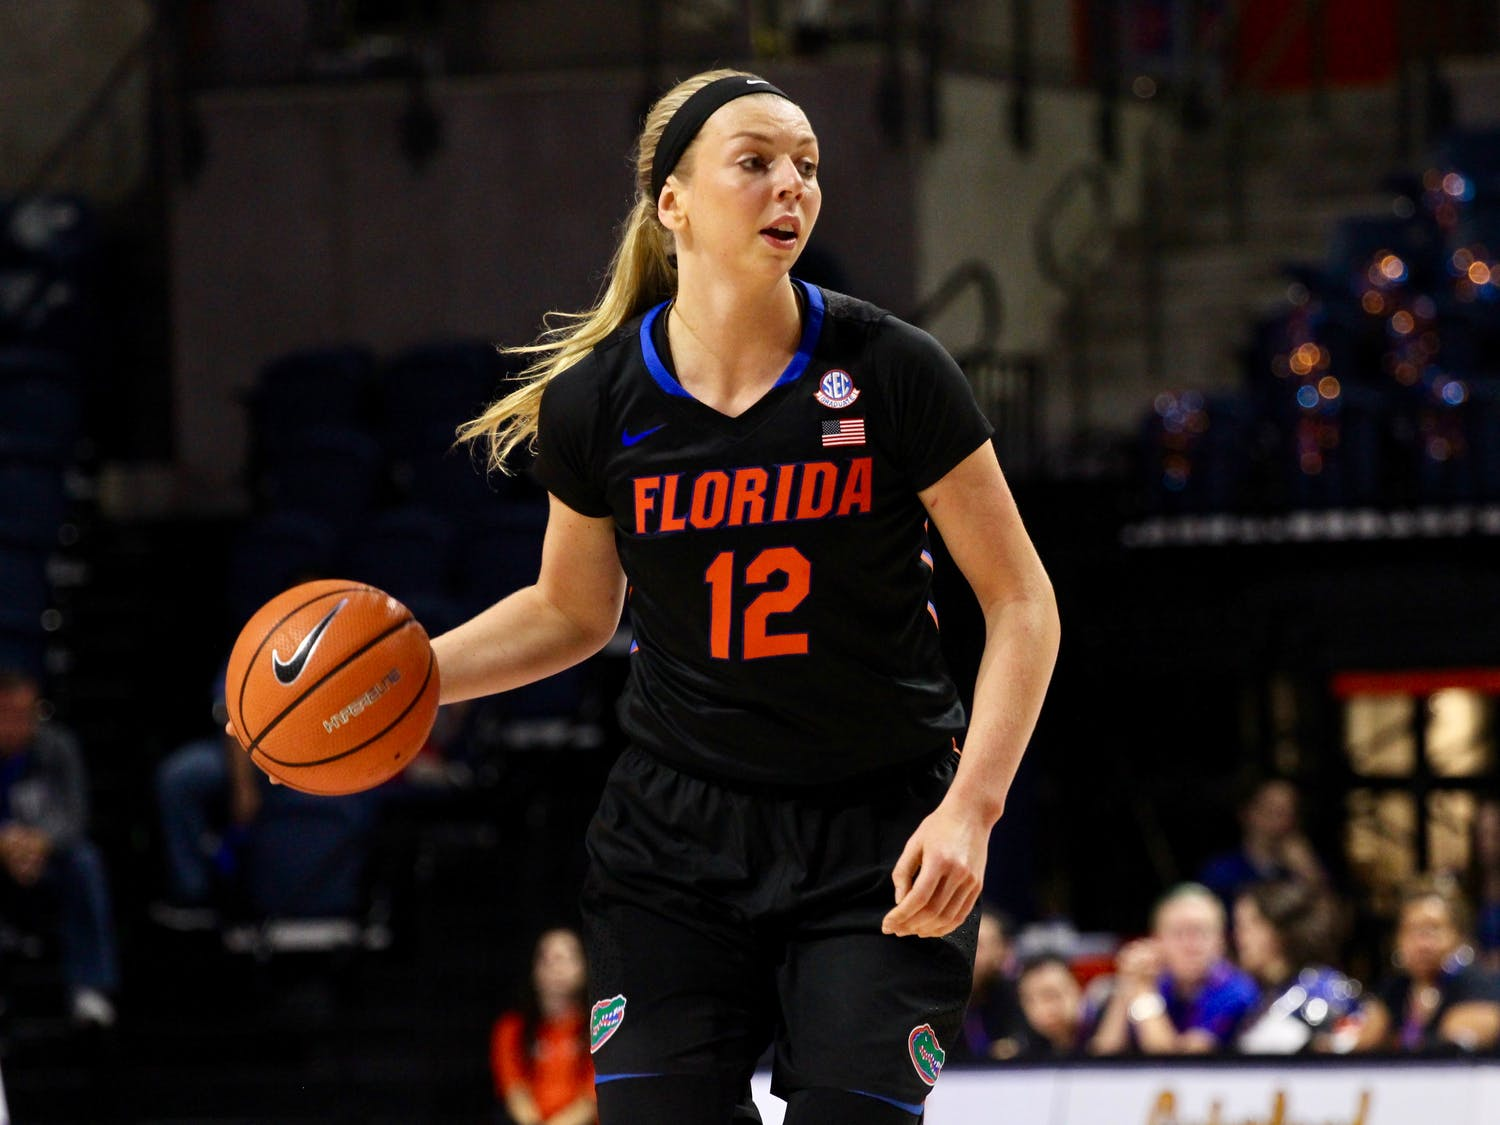 Florida guard Paulina Hersler scored a game-high 19 points on Thursday to lead the Gators to a 71-51 win over Saint Joseph's at the O'Connell Center.